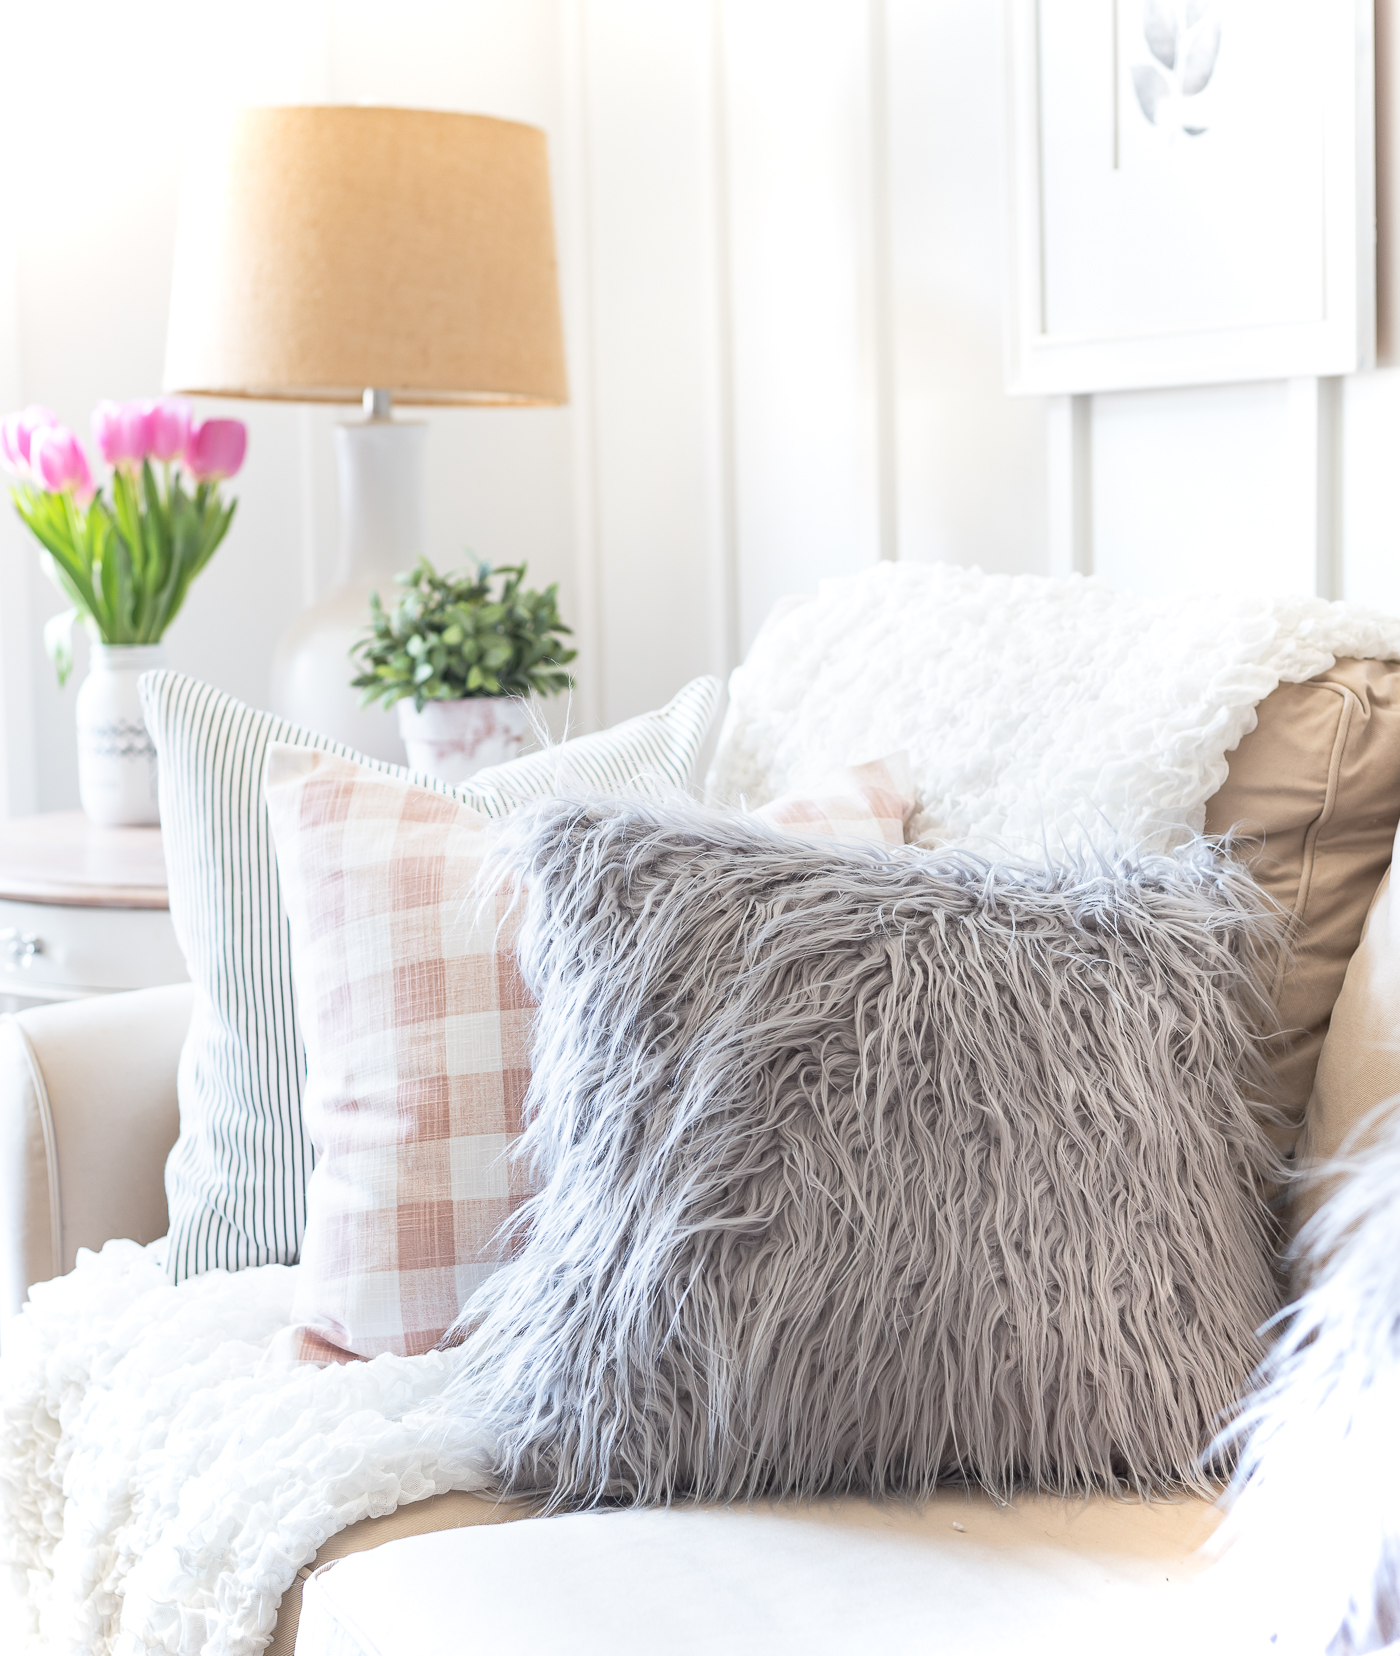 Spring decorating ideas in pink and gray -furry gray pillow